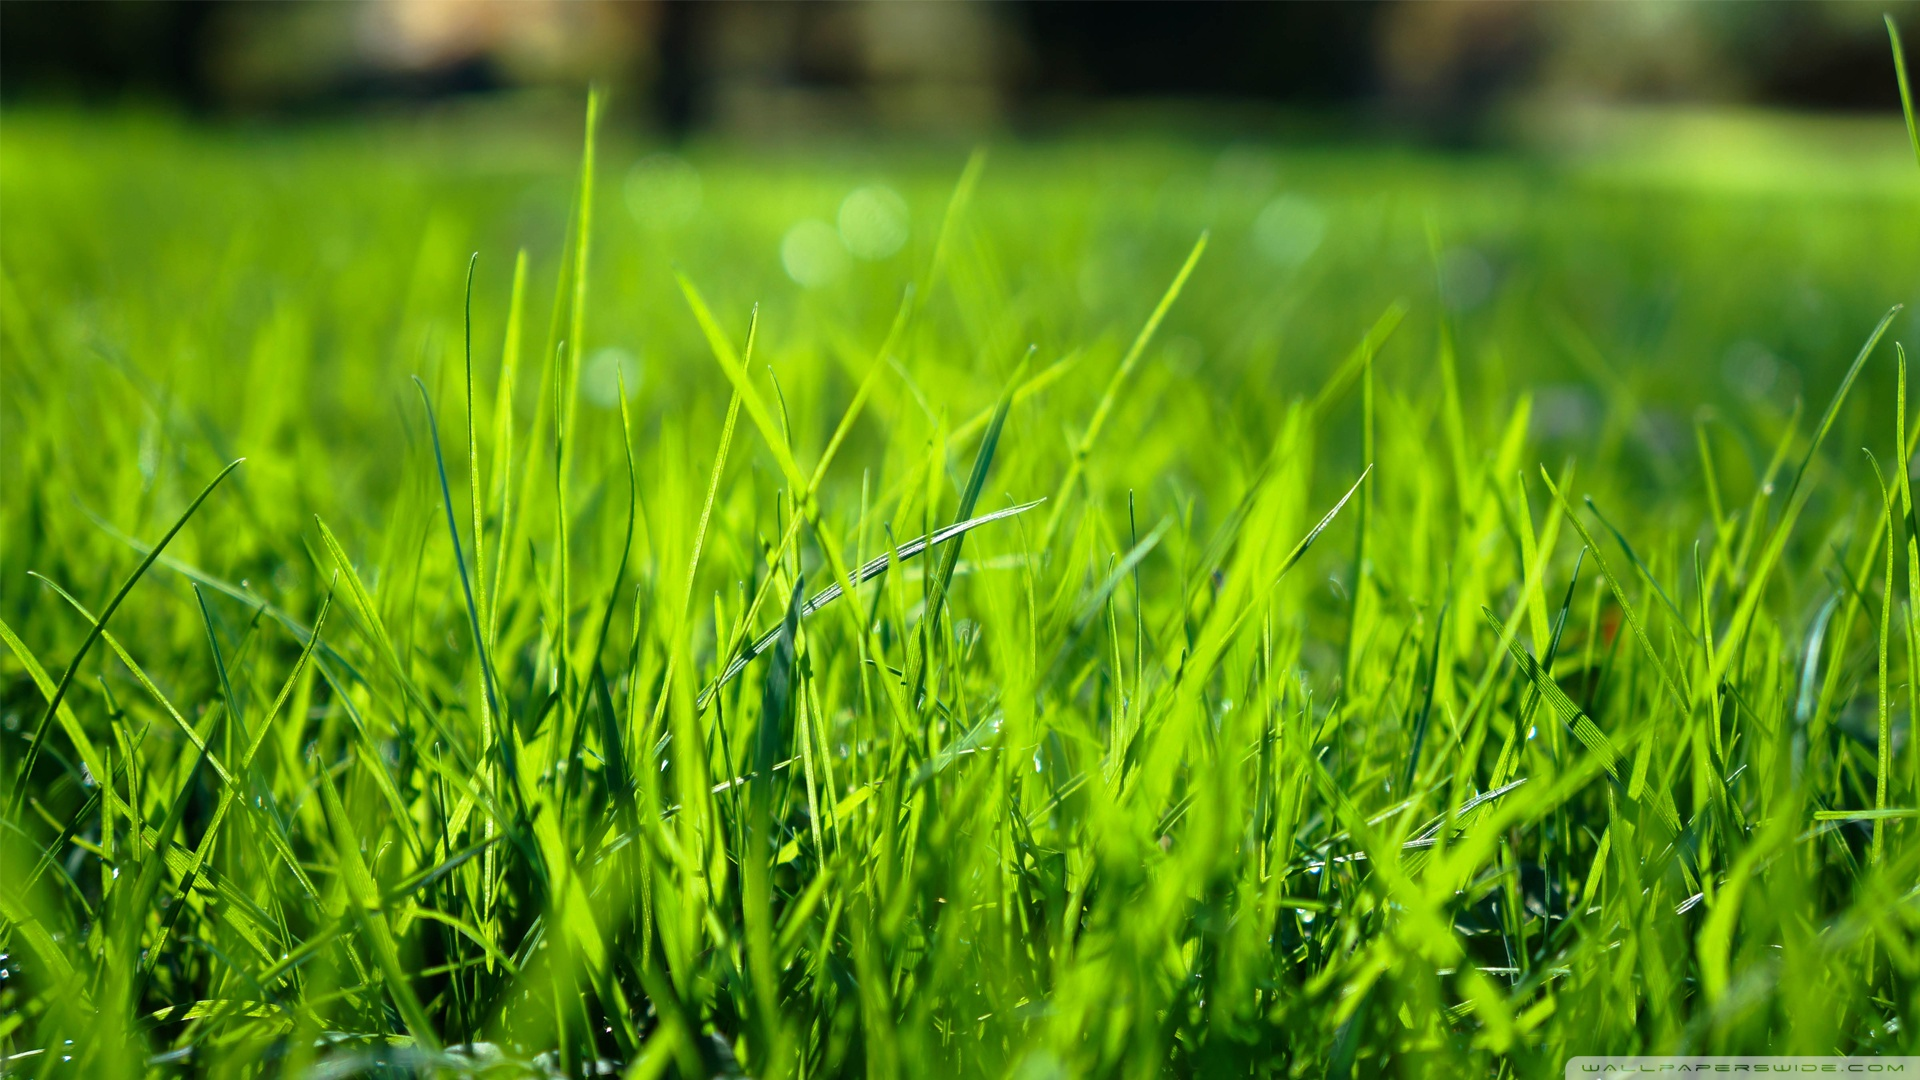 Morning Grass 5 Wallpaper 1920x1080 Greener Than Ever Lawn Care